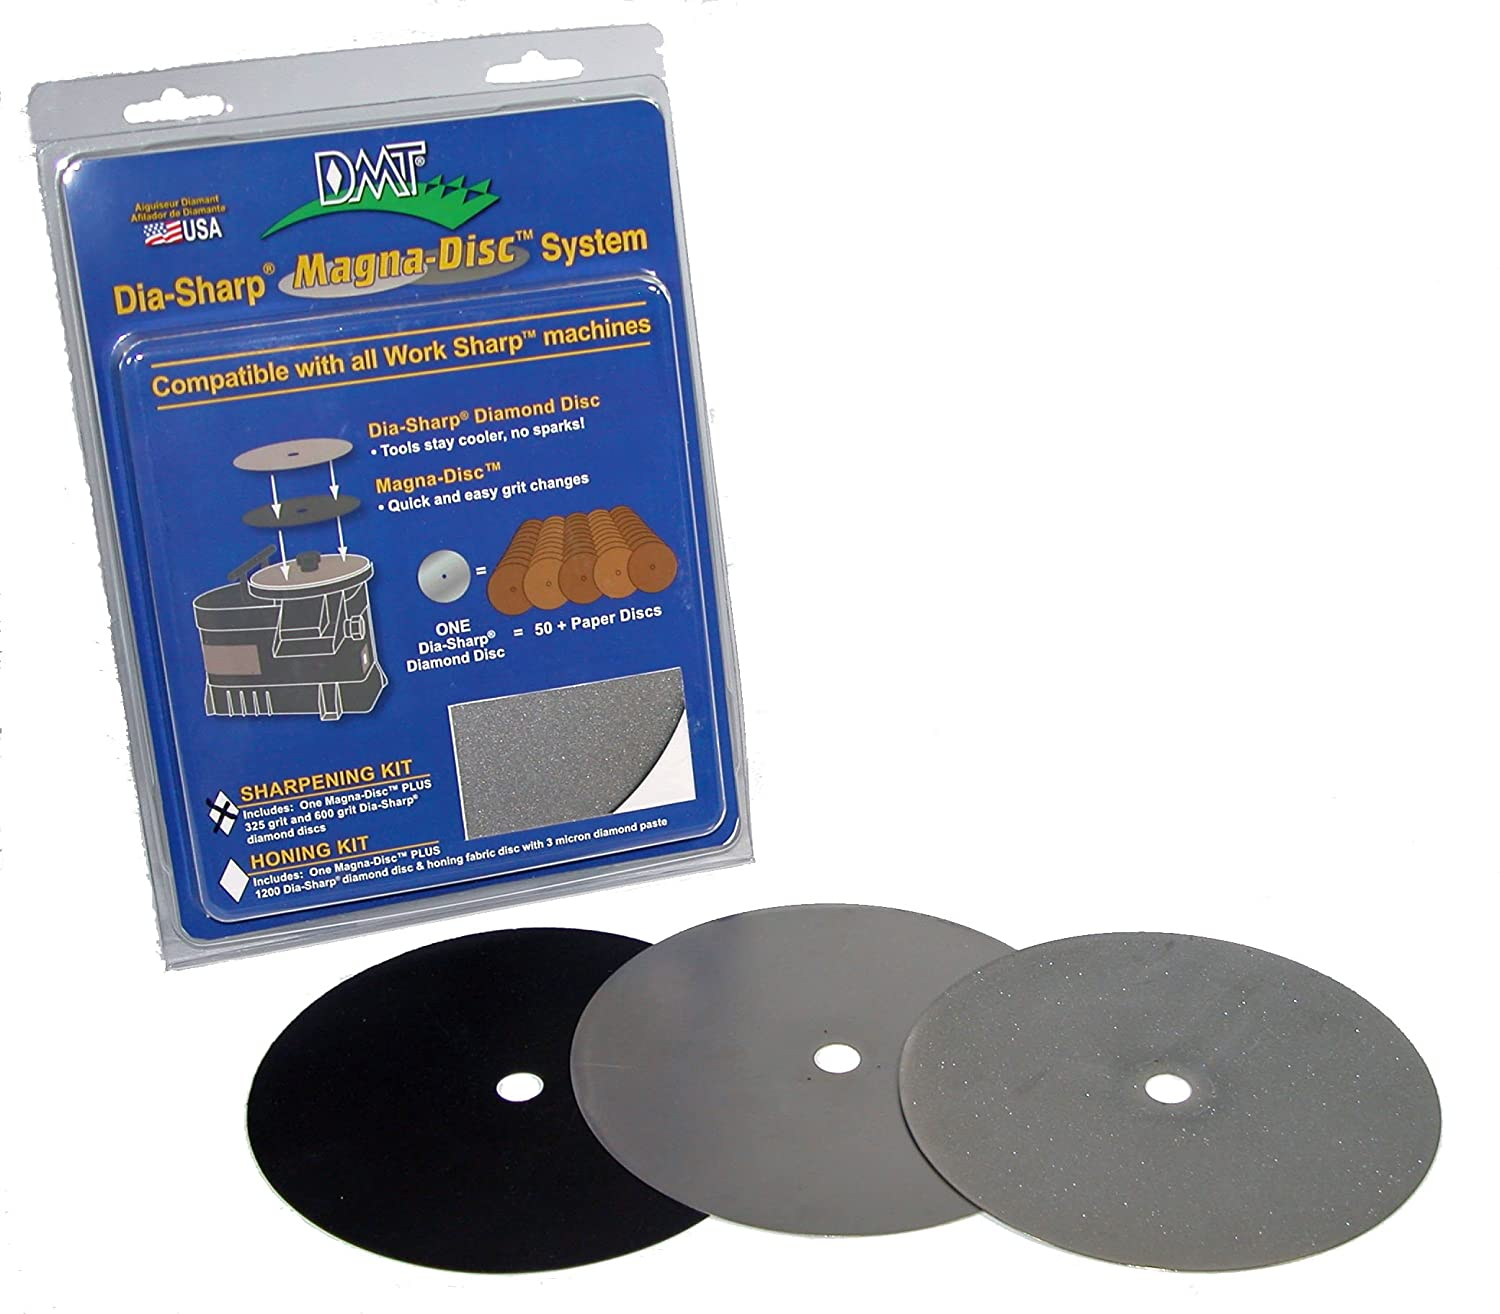 DMT DMDS-S Dia-Sharp Magna-Disc Sharpening Kit